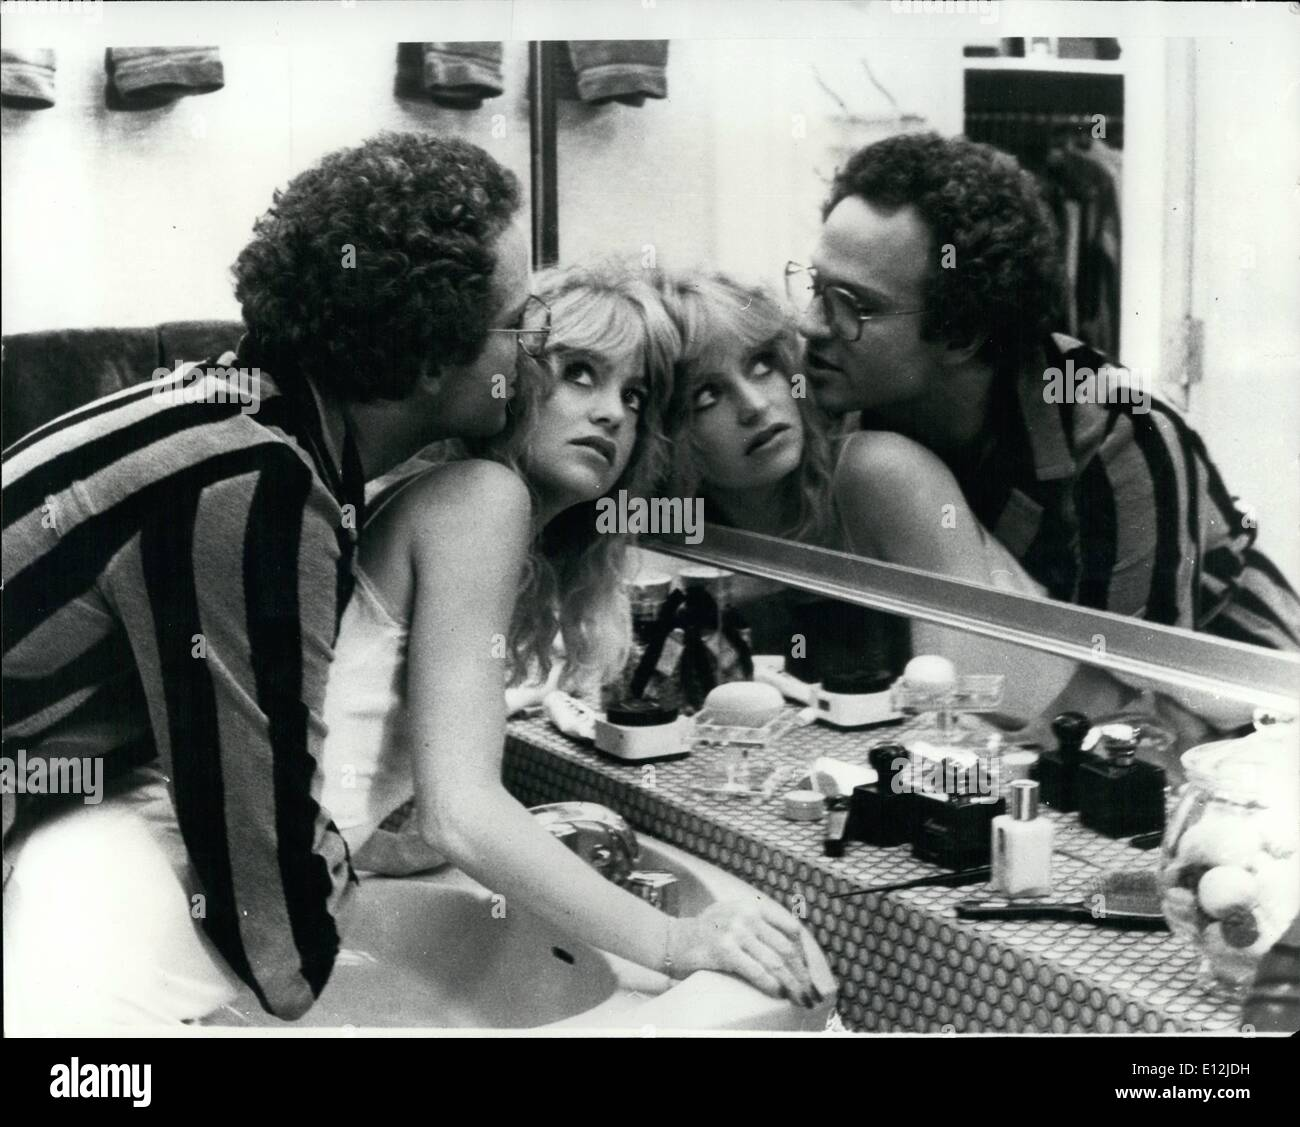 Feb. 24, 2012 - Goldie marries the man of her dreams. Blonde, radiant, vivacious Goldie Hawn, is seen being married to Albert Brooks, the man of her dreams. But, alas, her bliss is to end only hours later. Her new husband dies on their wedding night. The tragic plot is the surprise start to Goldie's latest film. The picture described as a sophisticated social comedy is called Private Benjaminà - Stock Image